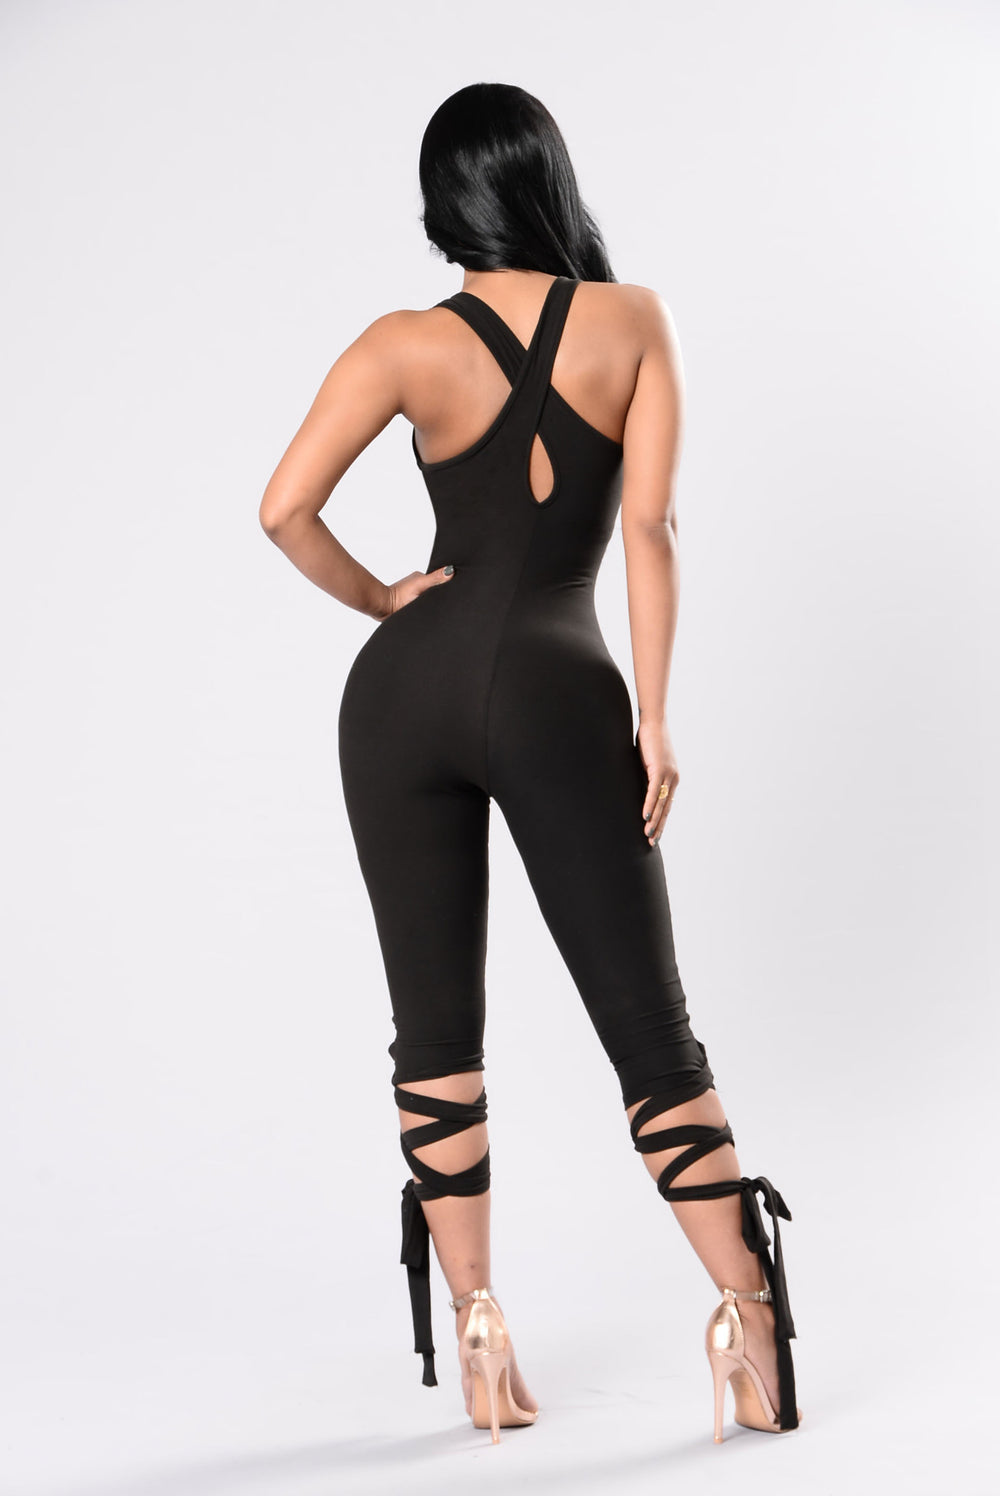 Urban Ballerina Jumpsuit - Black